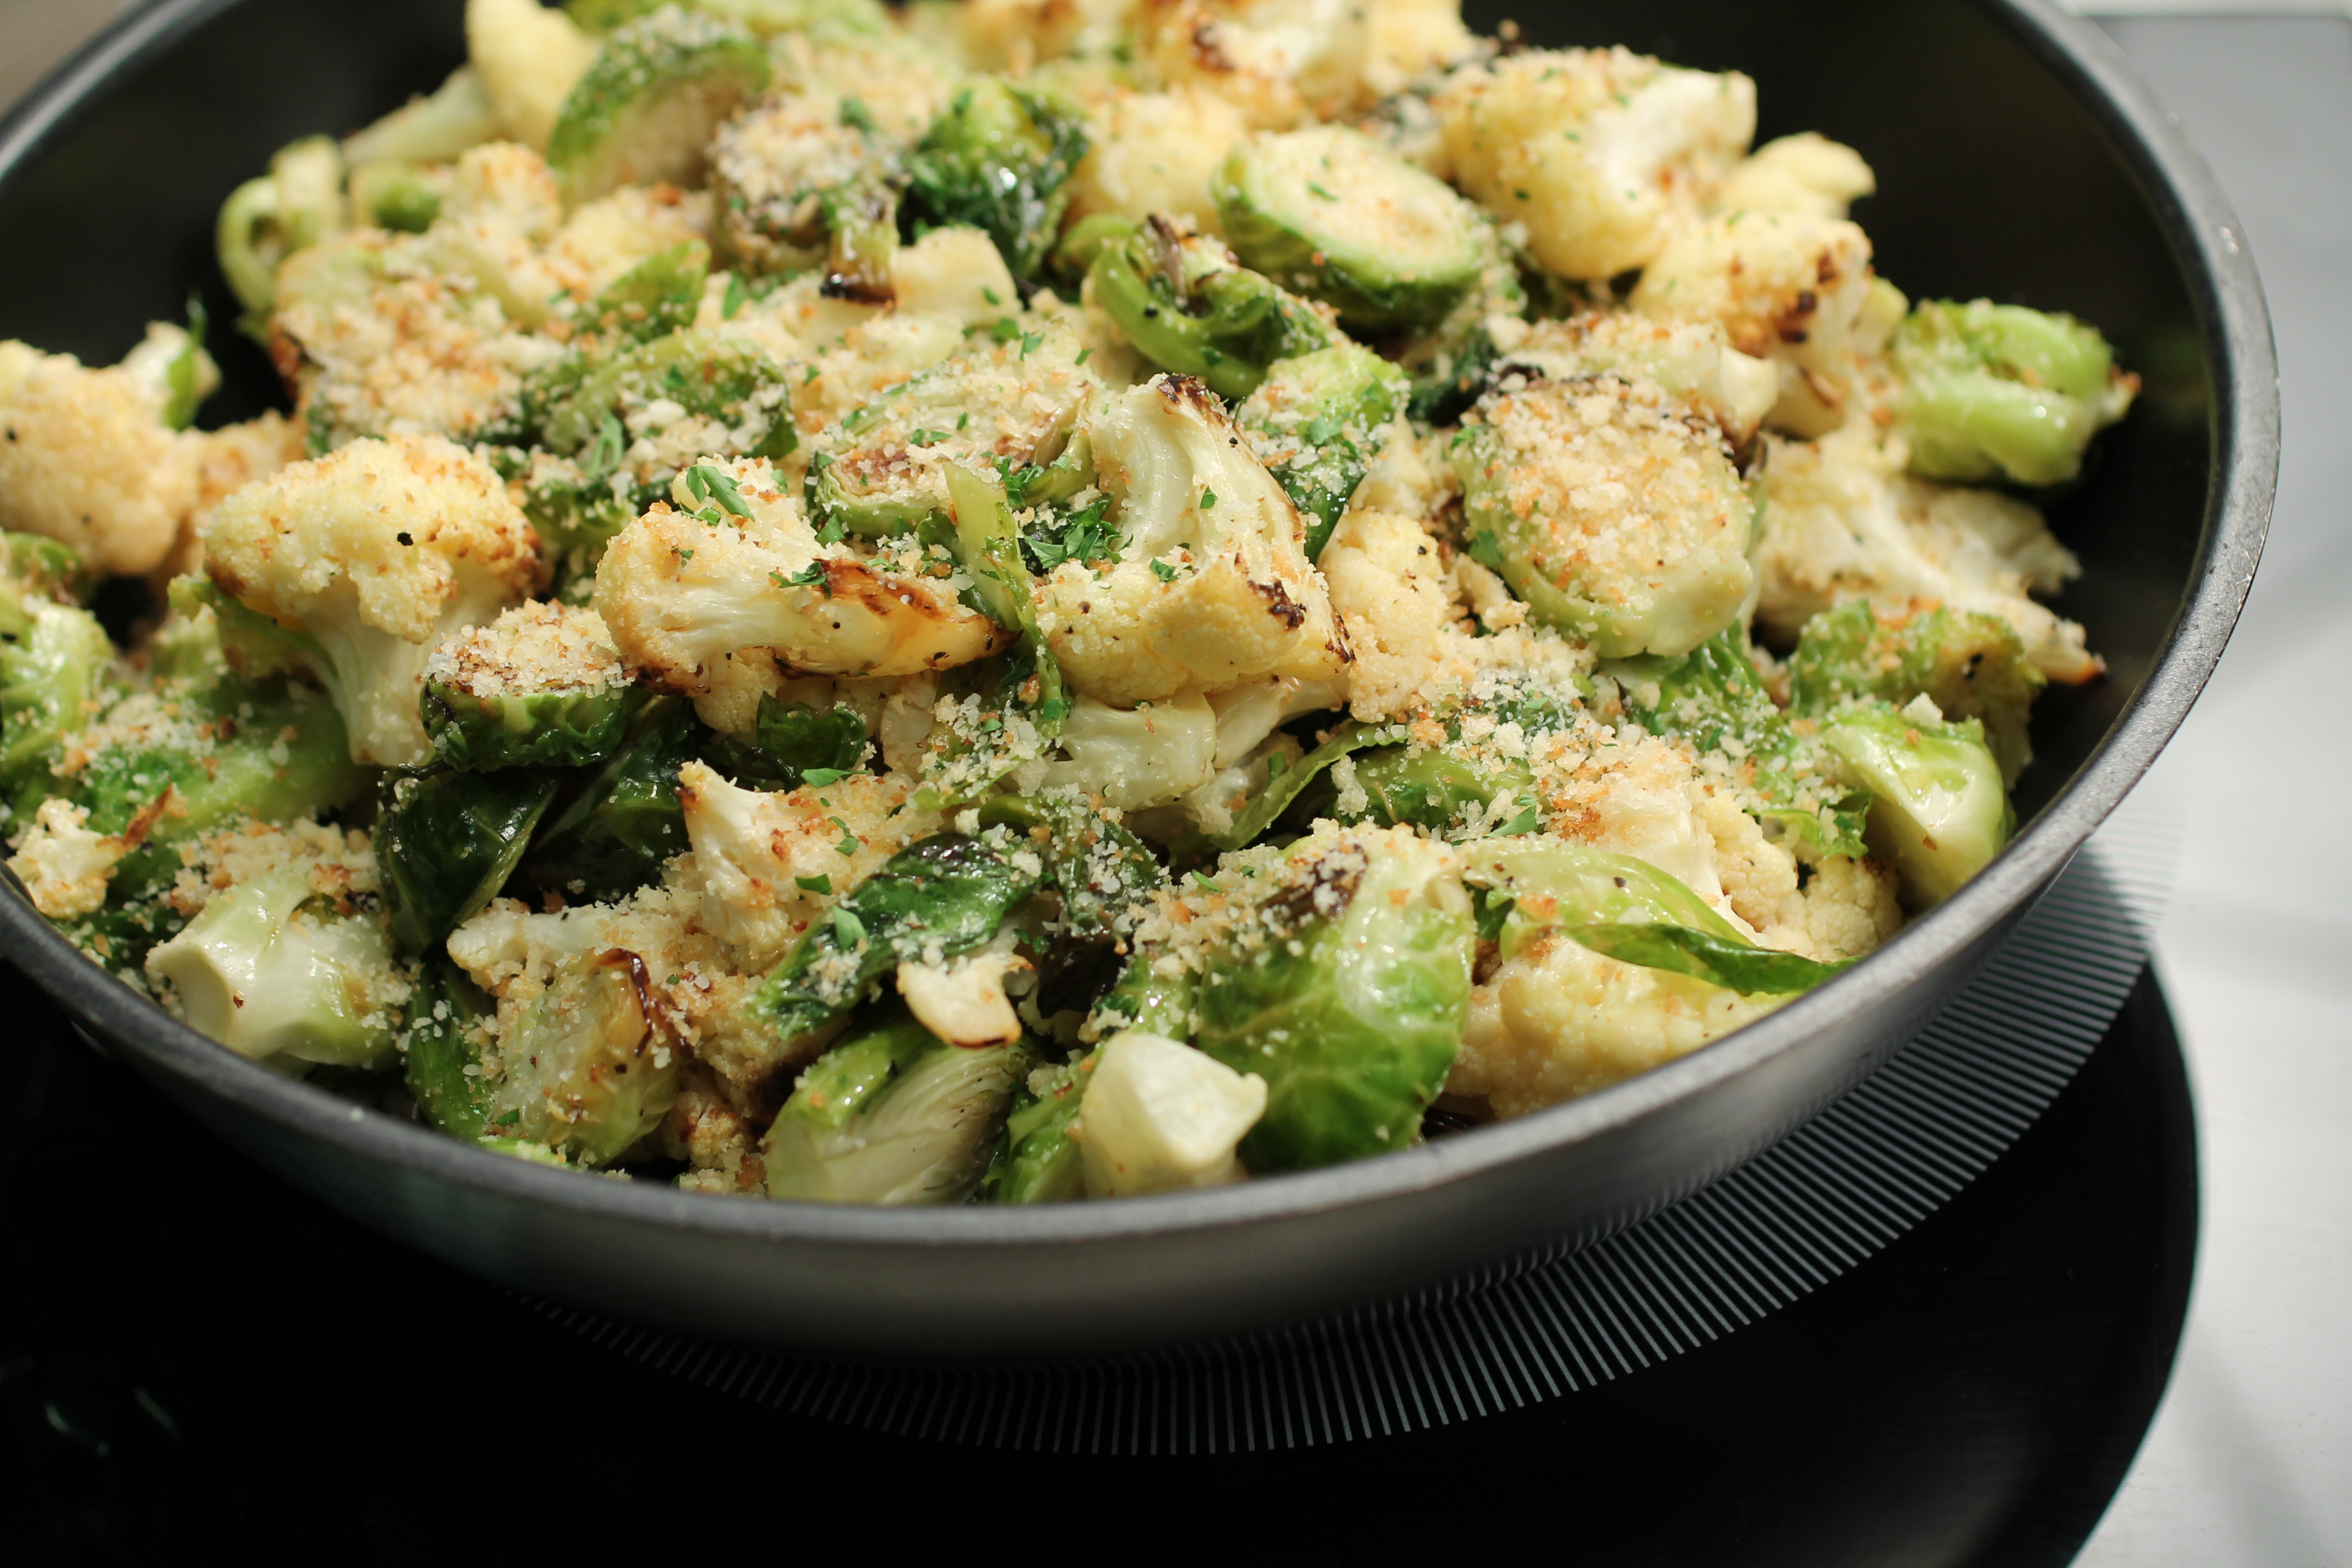 Roasted Brussels Sprouts and Cauliflower Thanksgiving side